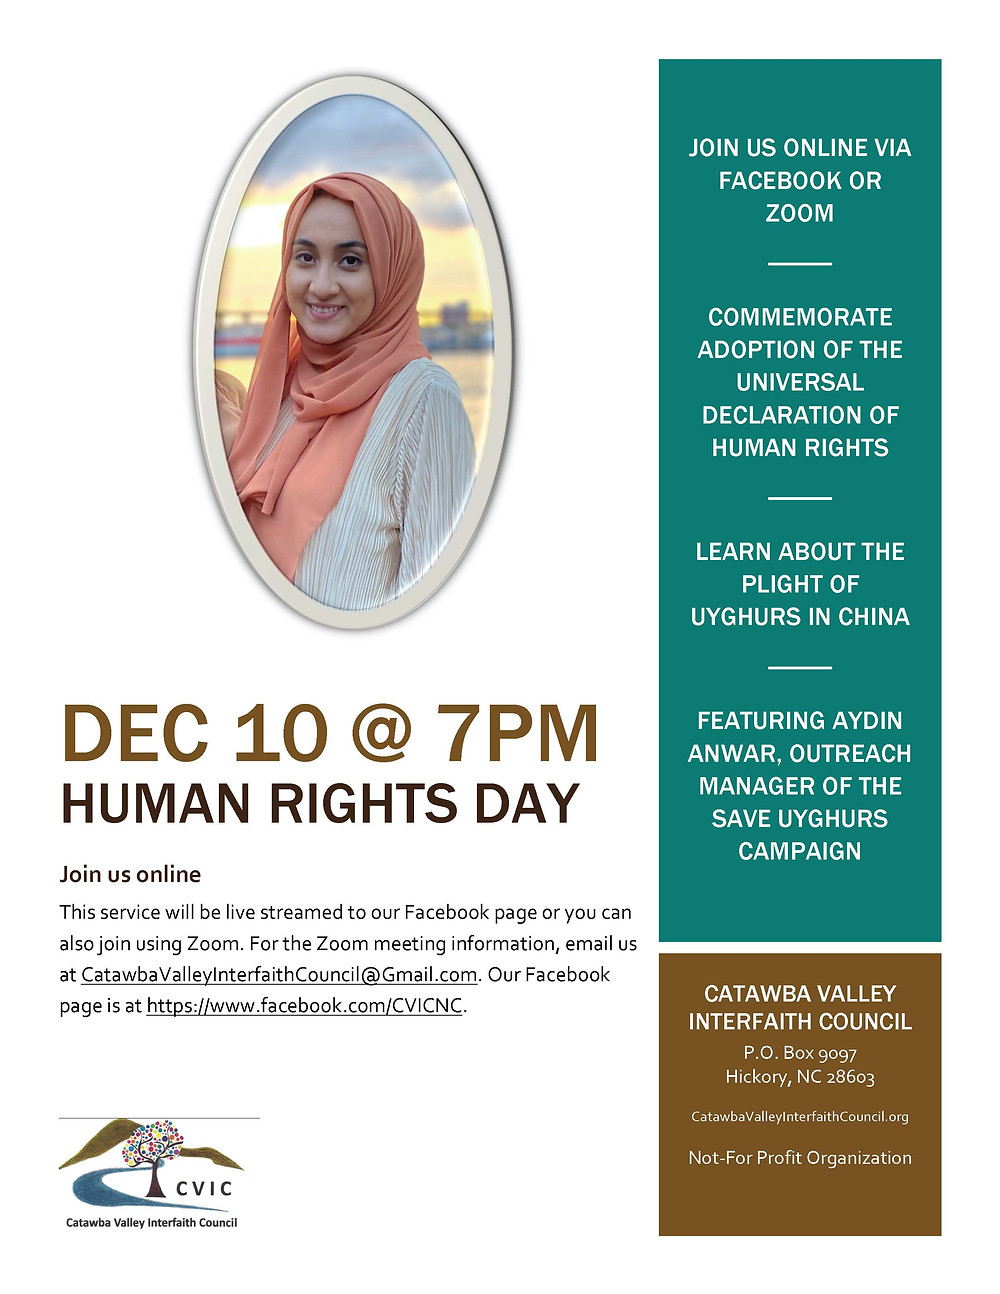 Human Rights Day Dec 10 7pm with Aydin Anwar